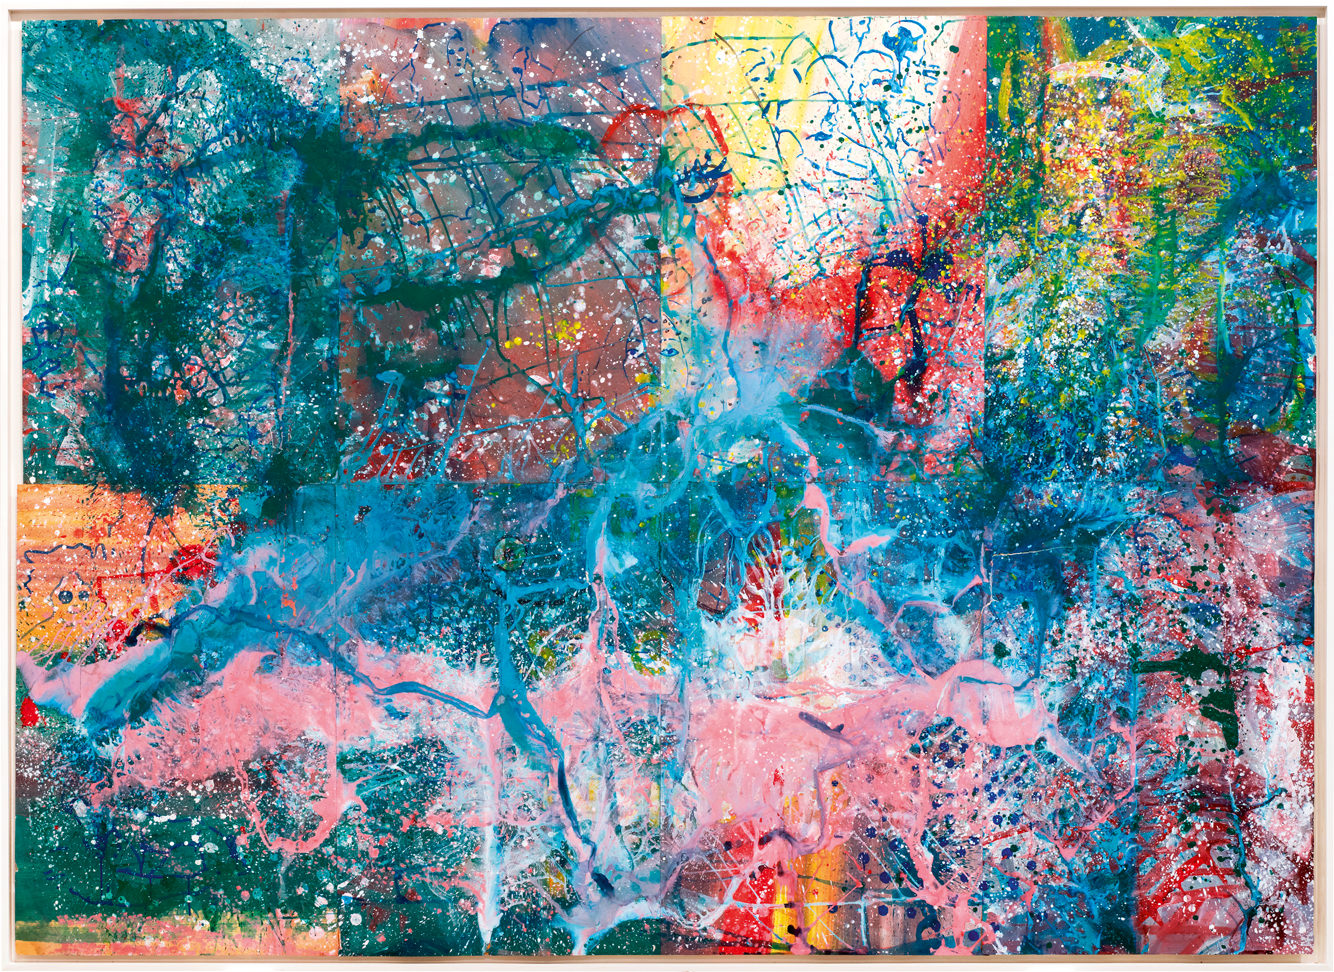 Ohne Titel (around 1972) by Sigmar Polke, Pinault collection. Courtesy Michael Werner Gallery, New York - The Estate of Sigmar Polke/SIAE, Roma 2016.   What's so marvellous about successful retrospectives of great masters is that they teach us as much about their work as what it takes to become a great master. The current show at the Palazzo Grassi in Venice dedicated to German artist Sigmar Polke (1941-2010) focuses on this major painter as an alchemist of colour, shape and material… revealing Polke's genius in this regard. Experimentation runs through his work from the 1960s, becoming even more evident in the 80s. The show looks at his establishment as a pop artist: the diversion of the photograph used as a source for his tableaux. It also considers his use of unusual tools - the photocopier and sanding machine - in the creation of his paintings. And not forgetting of course the inspiration derived from his use of mind-altering drugs in the 1970s. But it's his original materials that's perhaps the most fascinating. You could spend your entire time at the exhibition just perusing the extraordinary plates within the frames that read like a strange and cryptic poem: casein, enamel, spray, malachite, resin, lacquer and various pigments, silver oxide, ink, mica ferrous… It's a true laboratory. With Polke the incessant quest for new colours and new effects is not only a way of reinventing painting, but also a means of bringing his art alive. The videos shown in Venice are truly enlightening. We witness the painter in action facing his canvas, blowtorch in hand, like the true artisan that he was. We see colours filmed in close ups running like rivulets of magma over his monumental tableaux. The result, whether it's a figurative or abstract painting (with Polke the two often blend) is always as mysterious as it is wild.